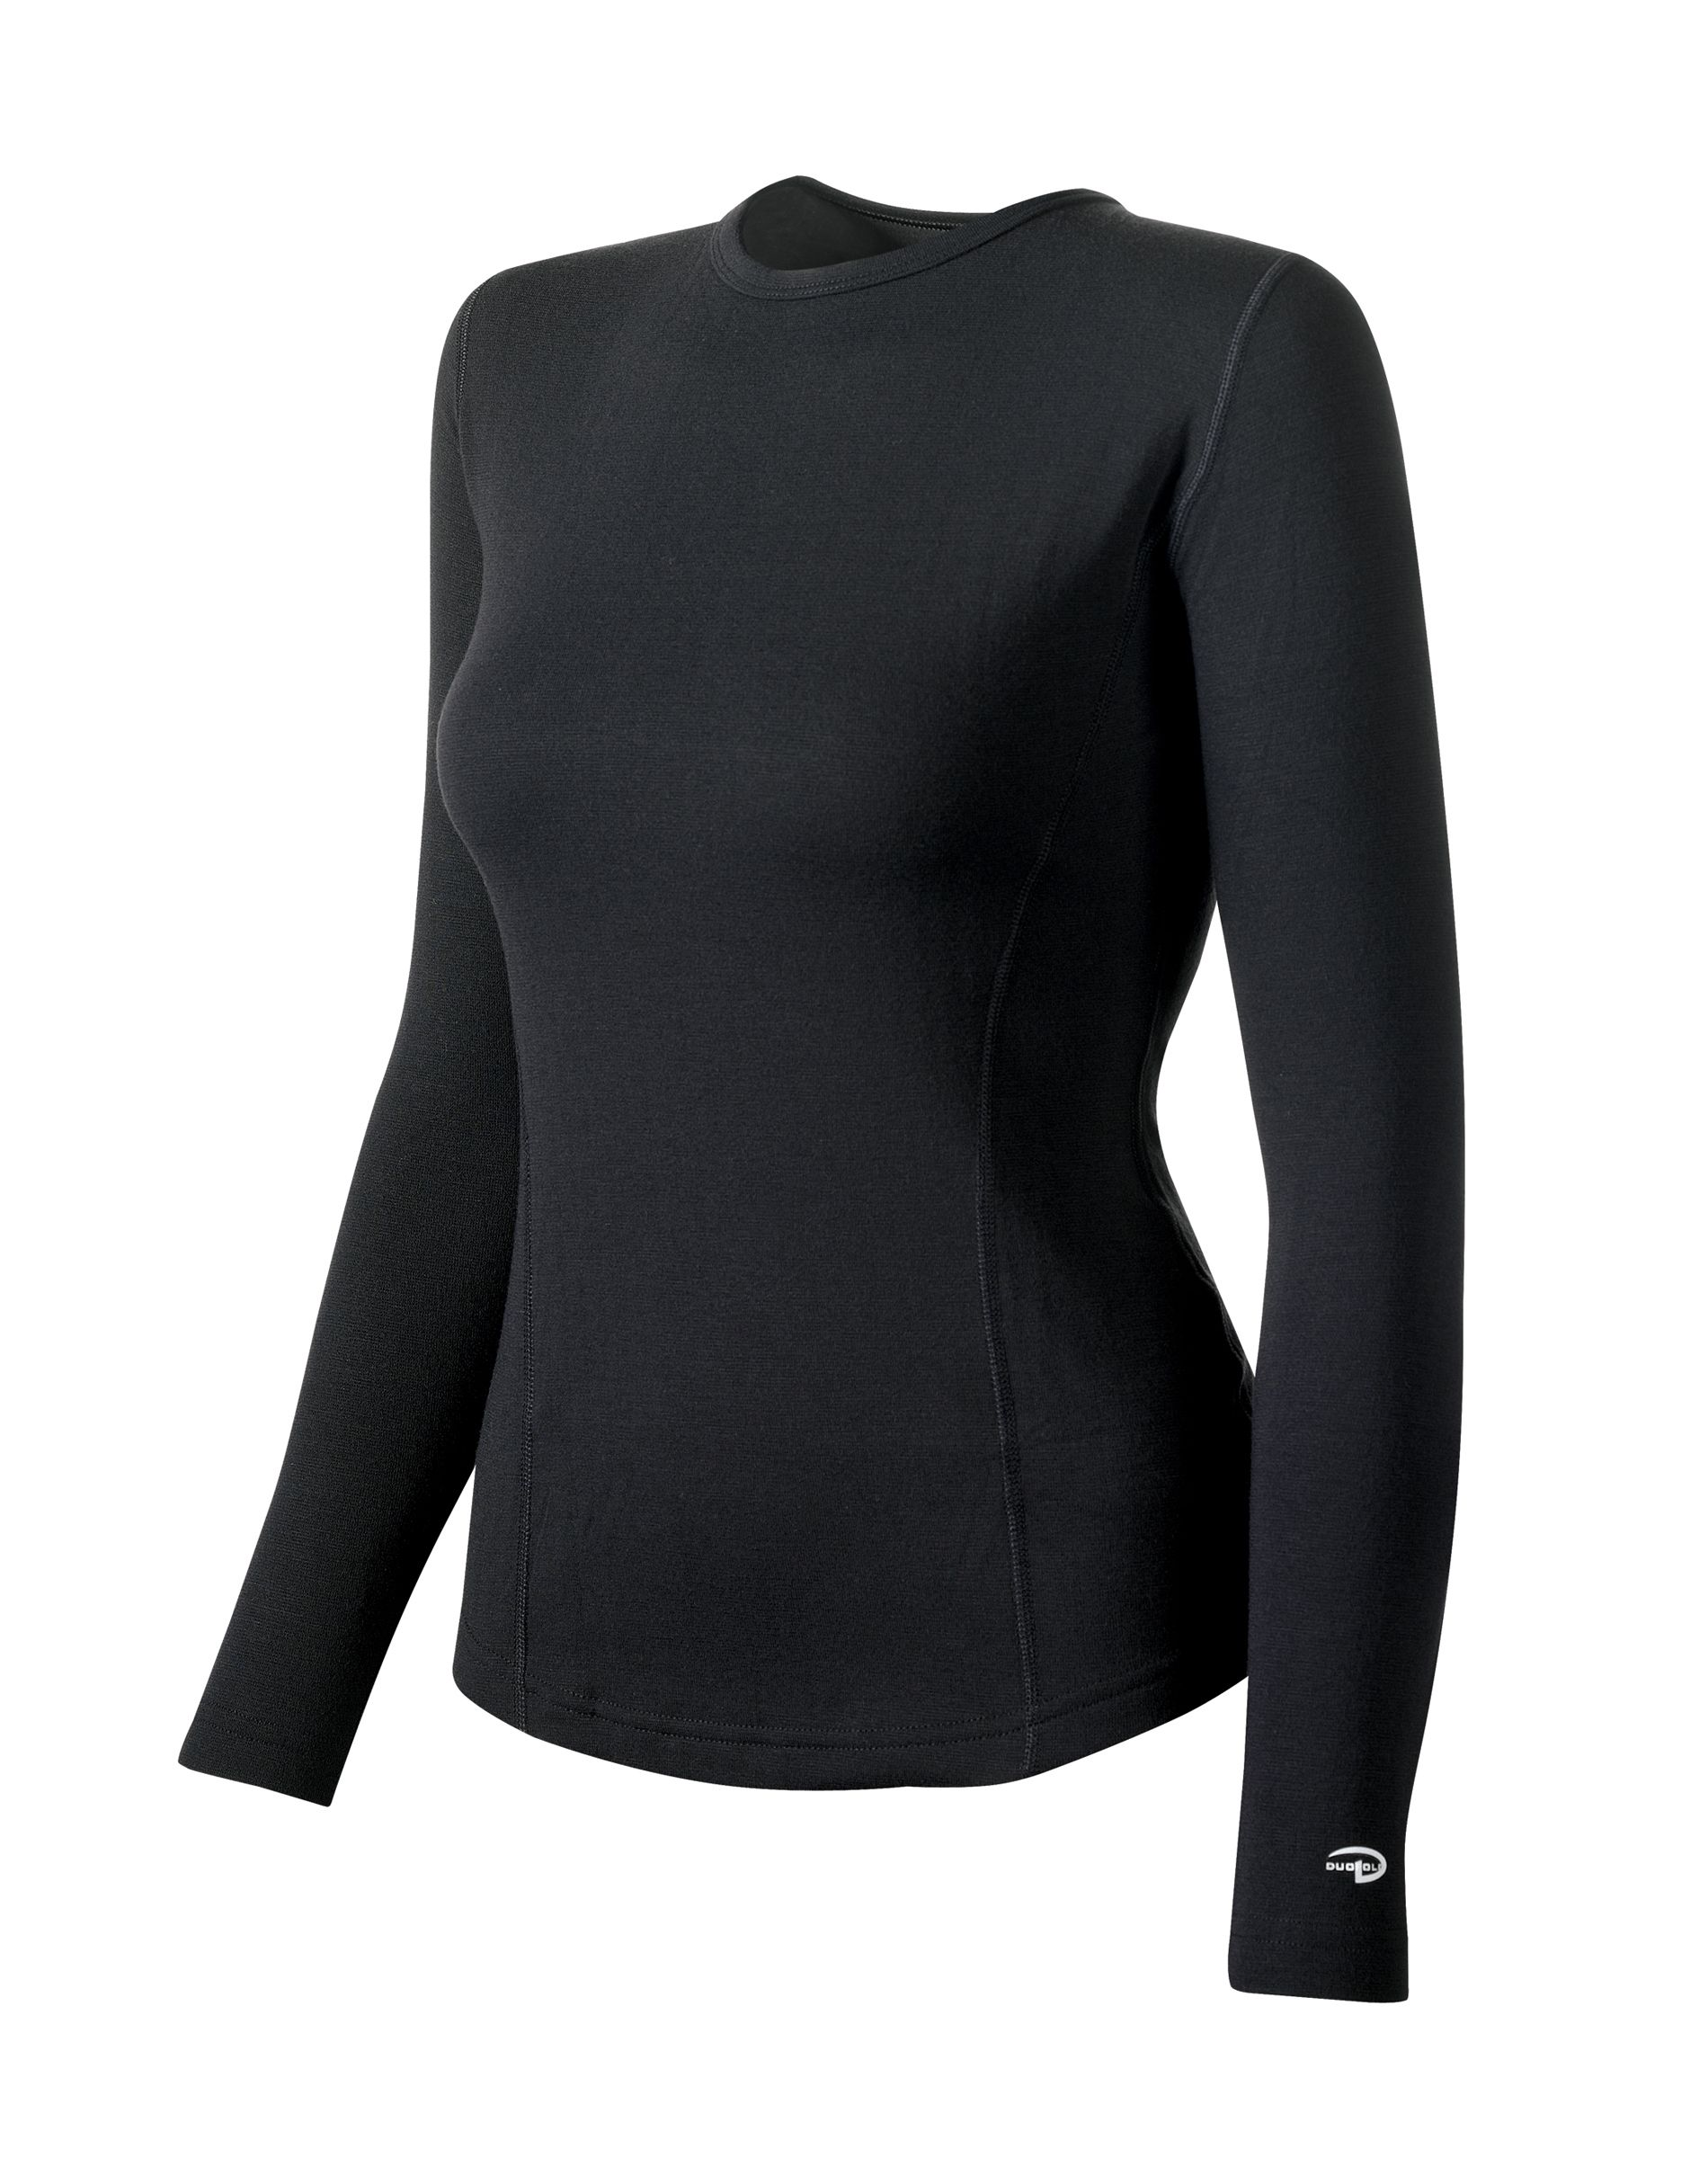 Duofold by Champion Varitherm Women's Thermal Long-Sleeve Shirt women Duofold by Champion